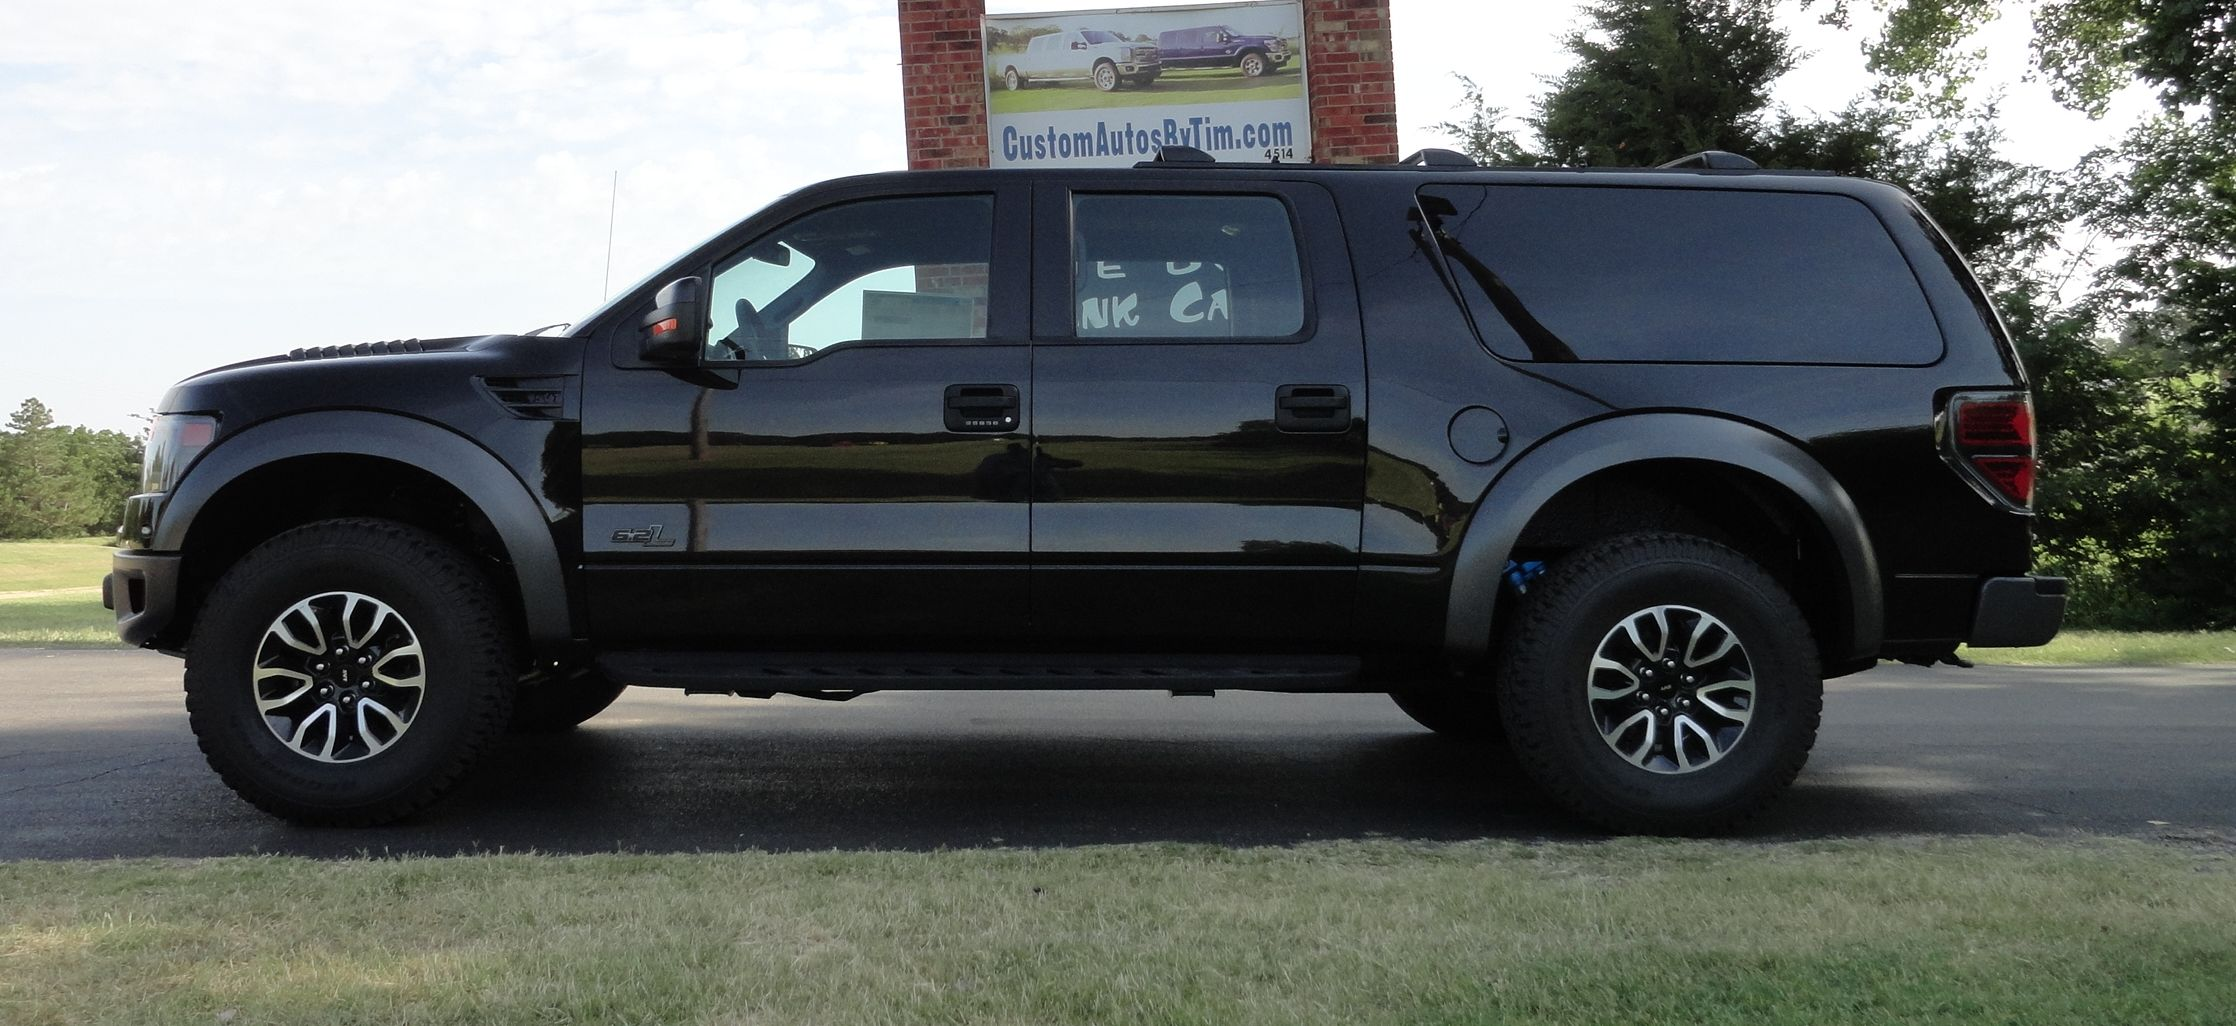 Ford Raptor SUV Conversion